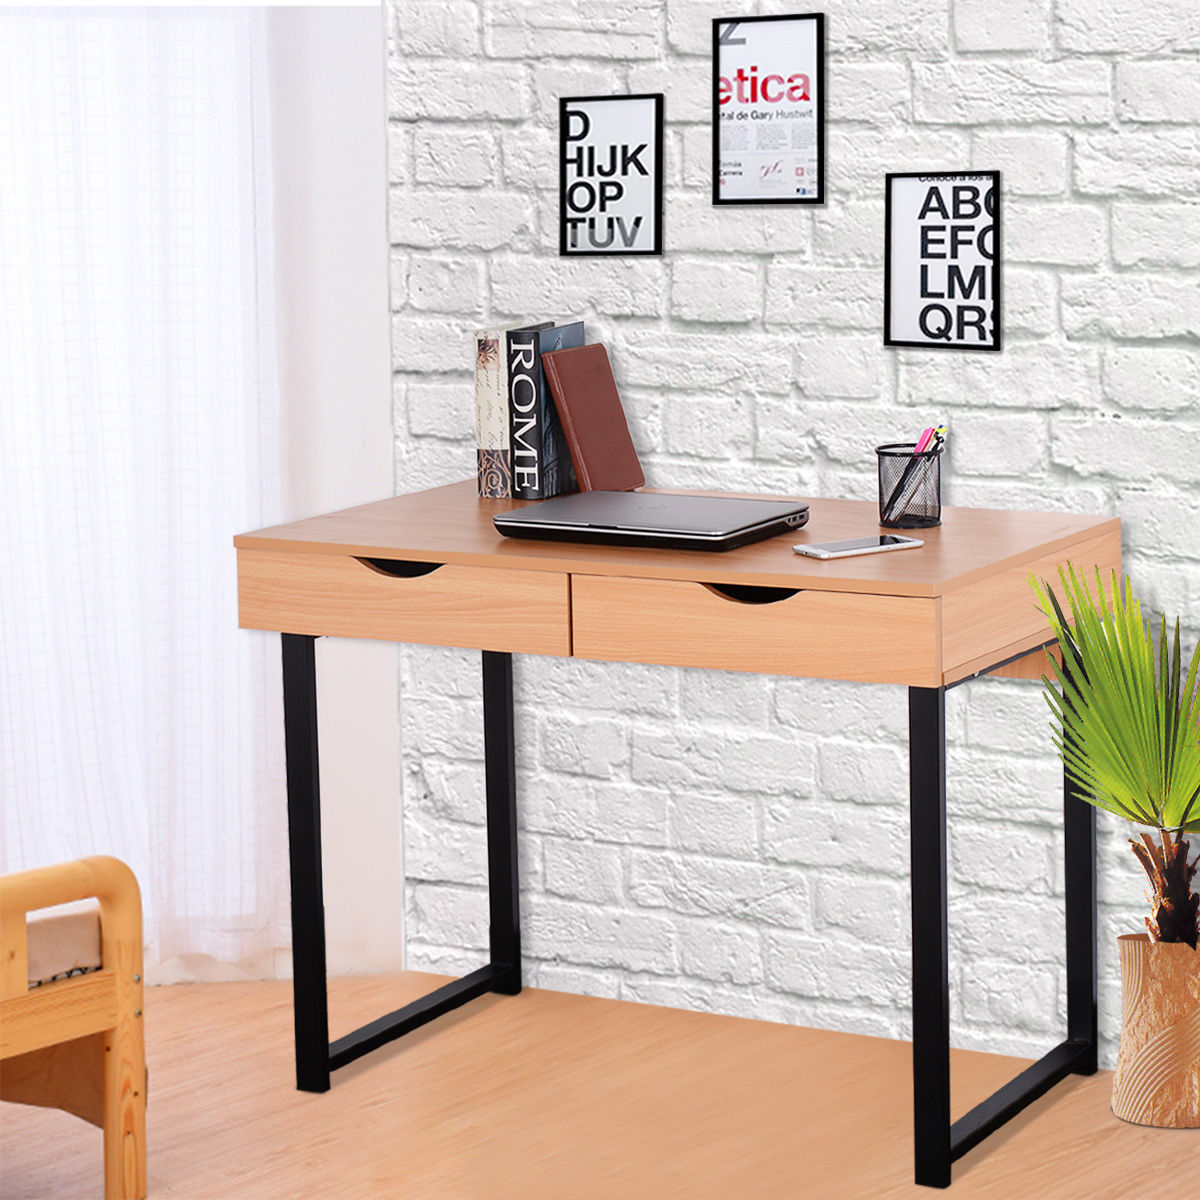 Giantex Modern Computer Desk Home Office Furniture Workstation Table Steel Frame Wood Laptop Desk With 2 Drawers HW54145 bedroom home furniture dresser table with 2 drawers mirror and stool neoclassical style kd packaged wooden carved materials